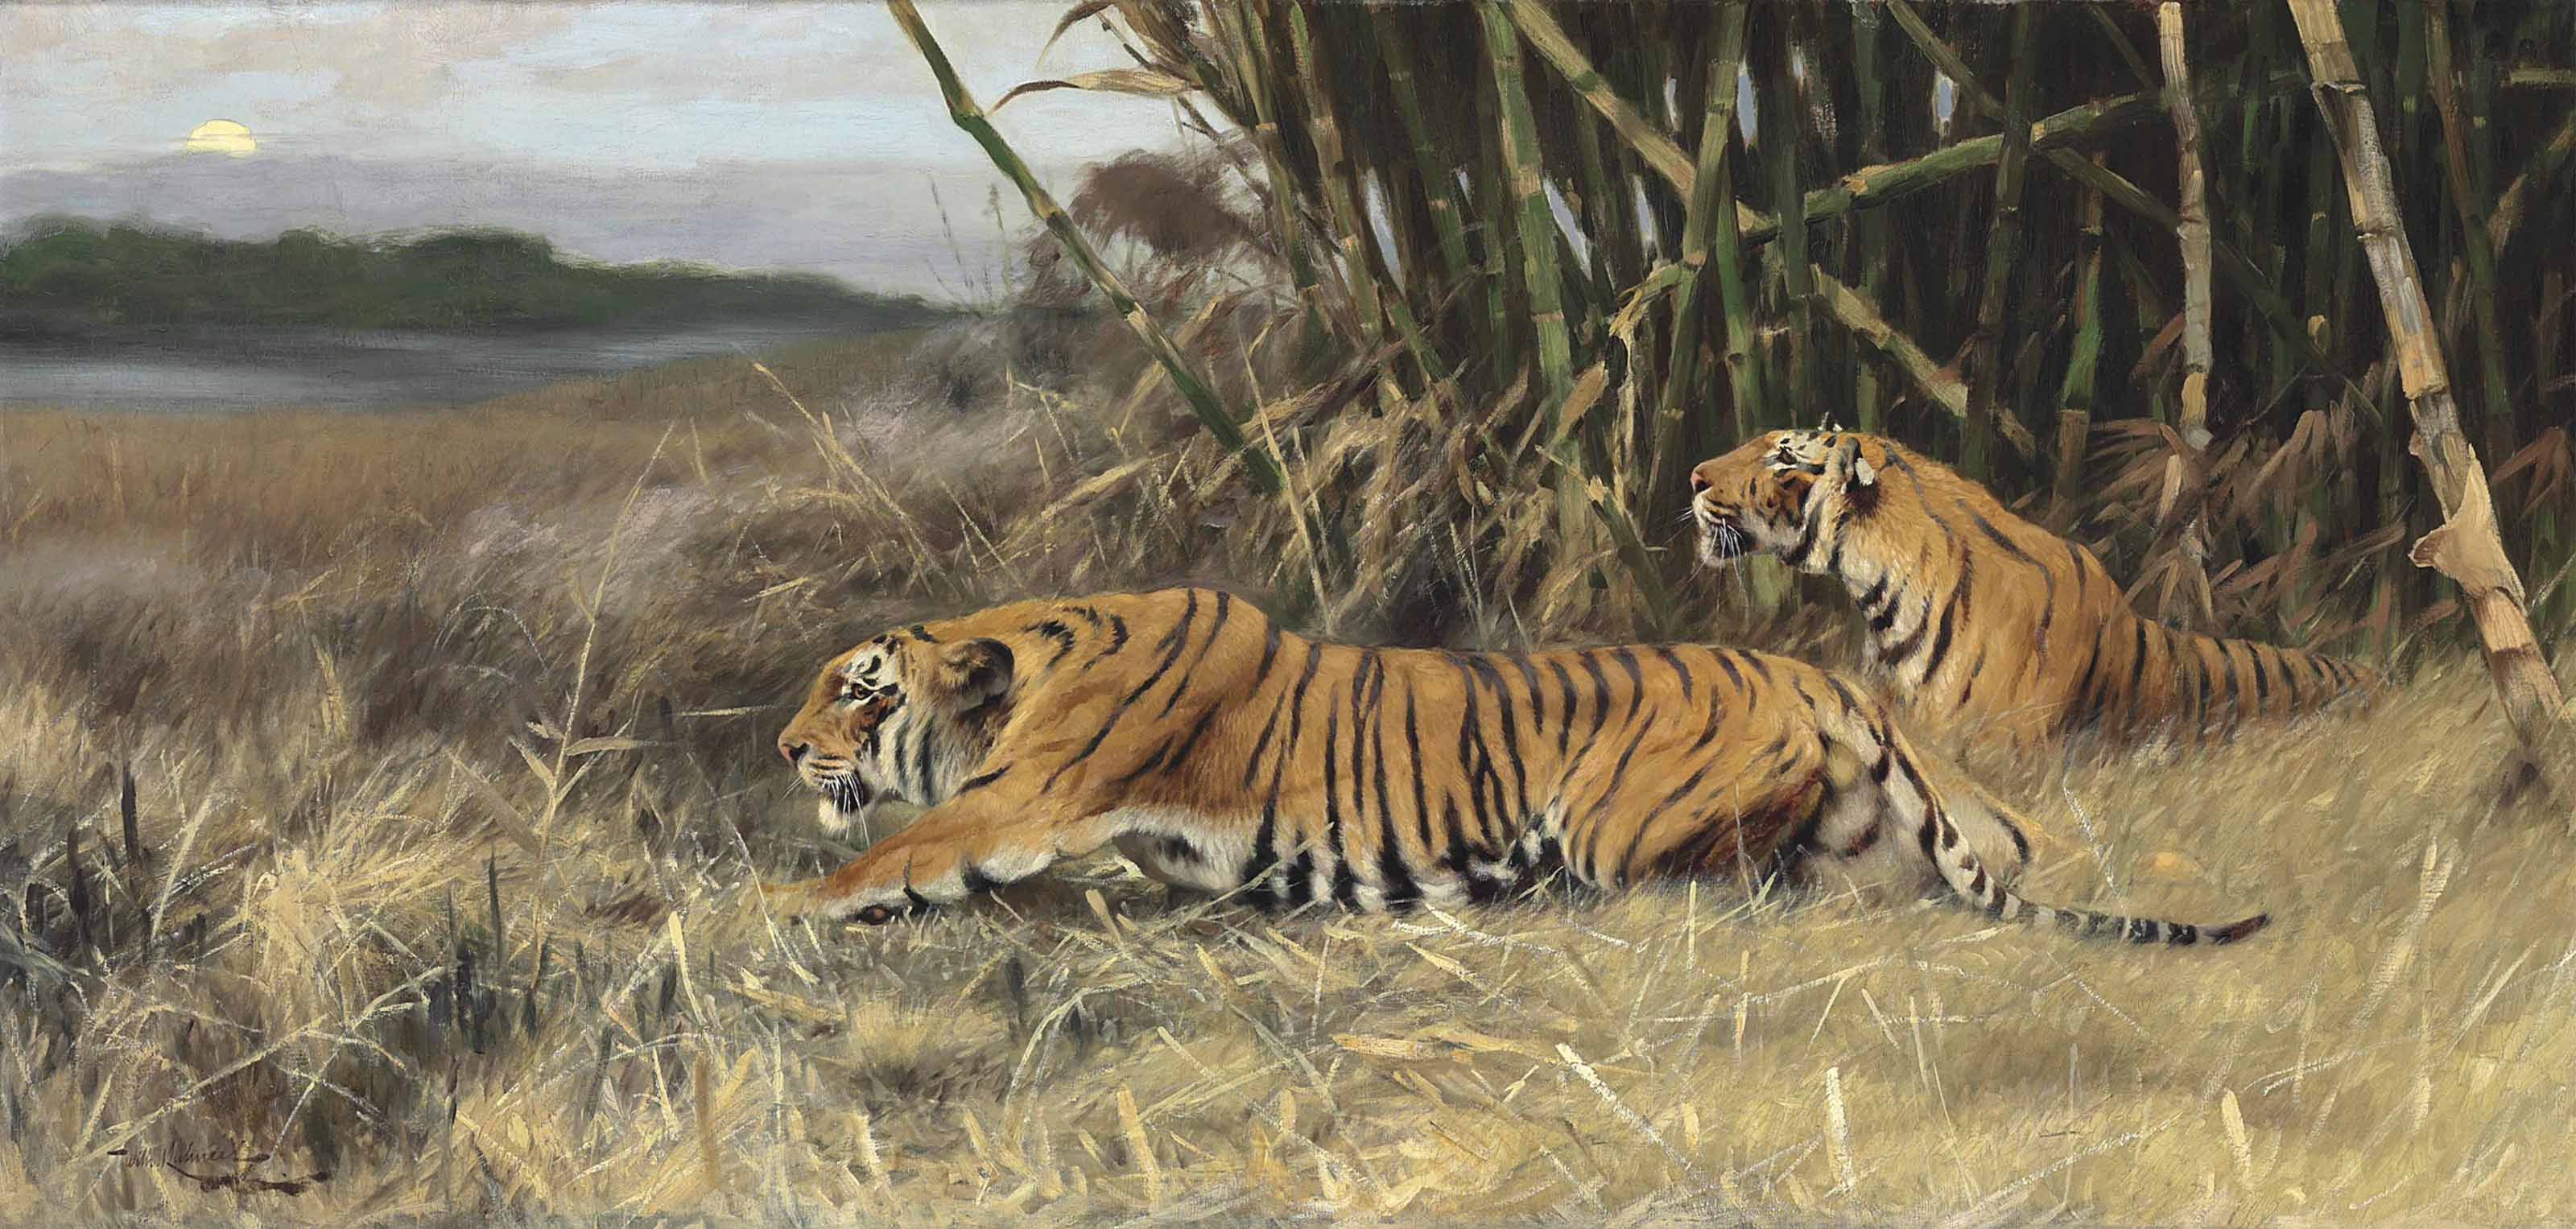 Two stalking tigers